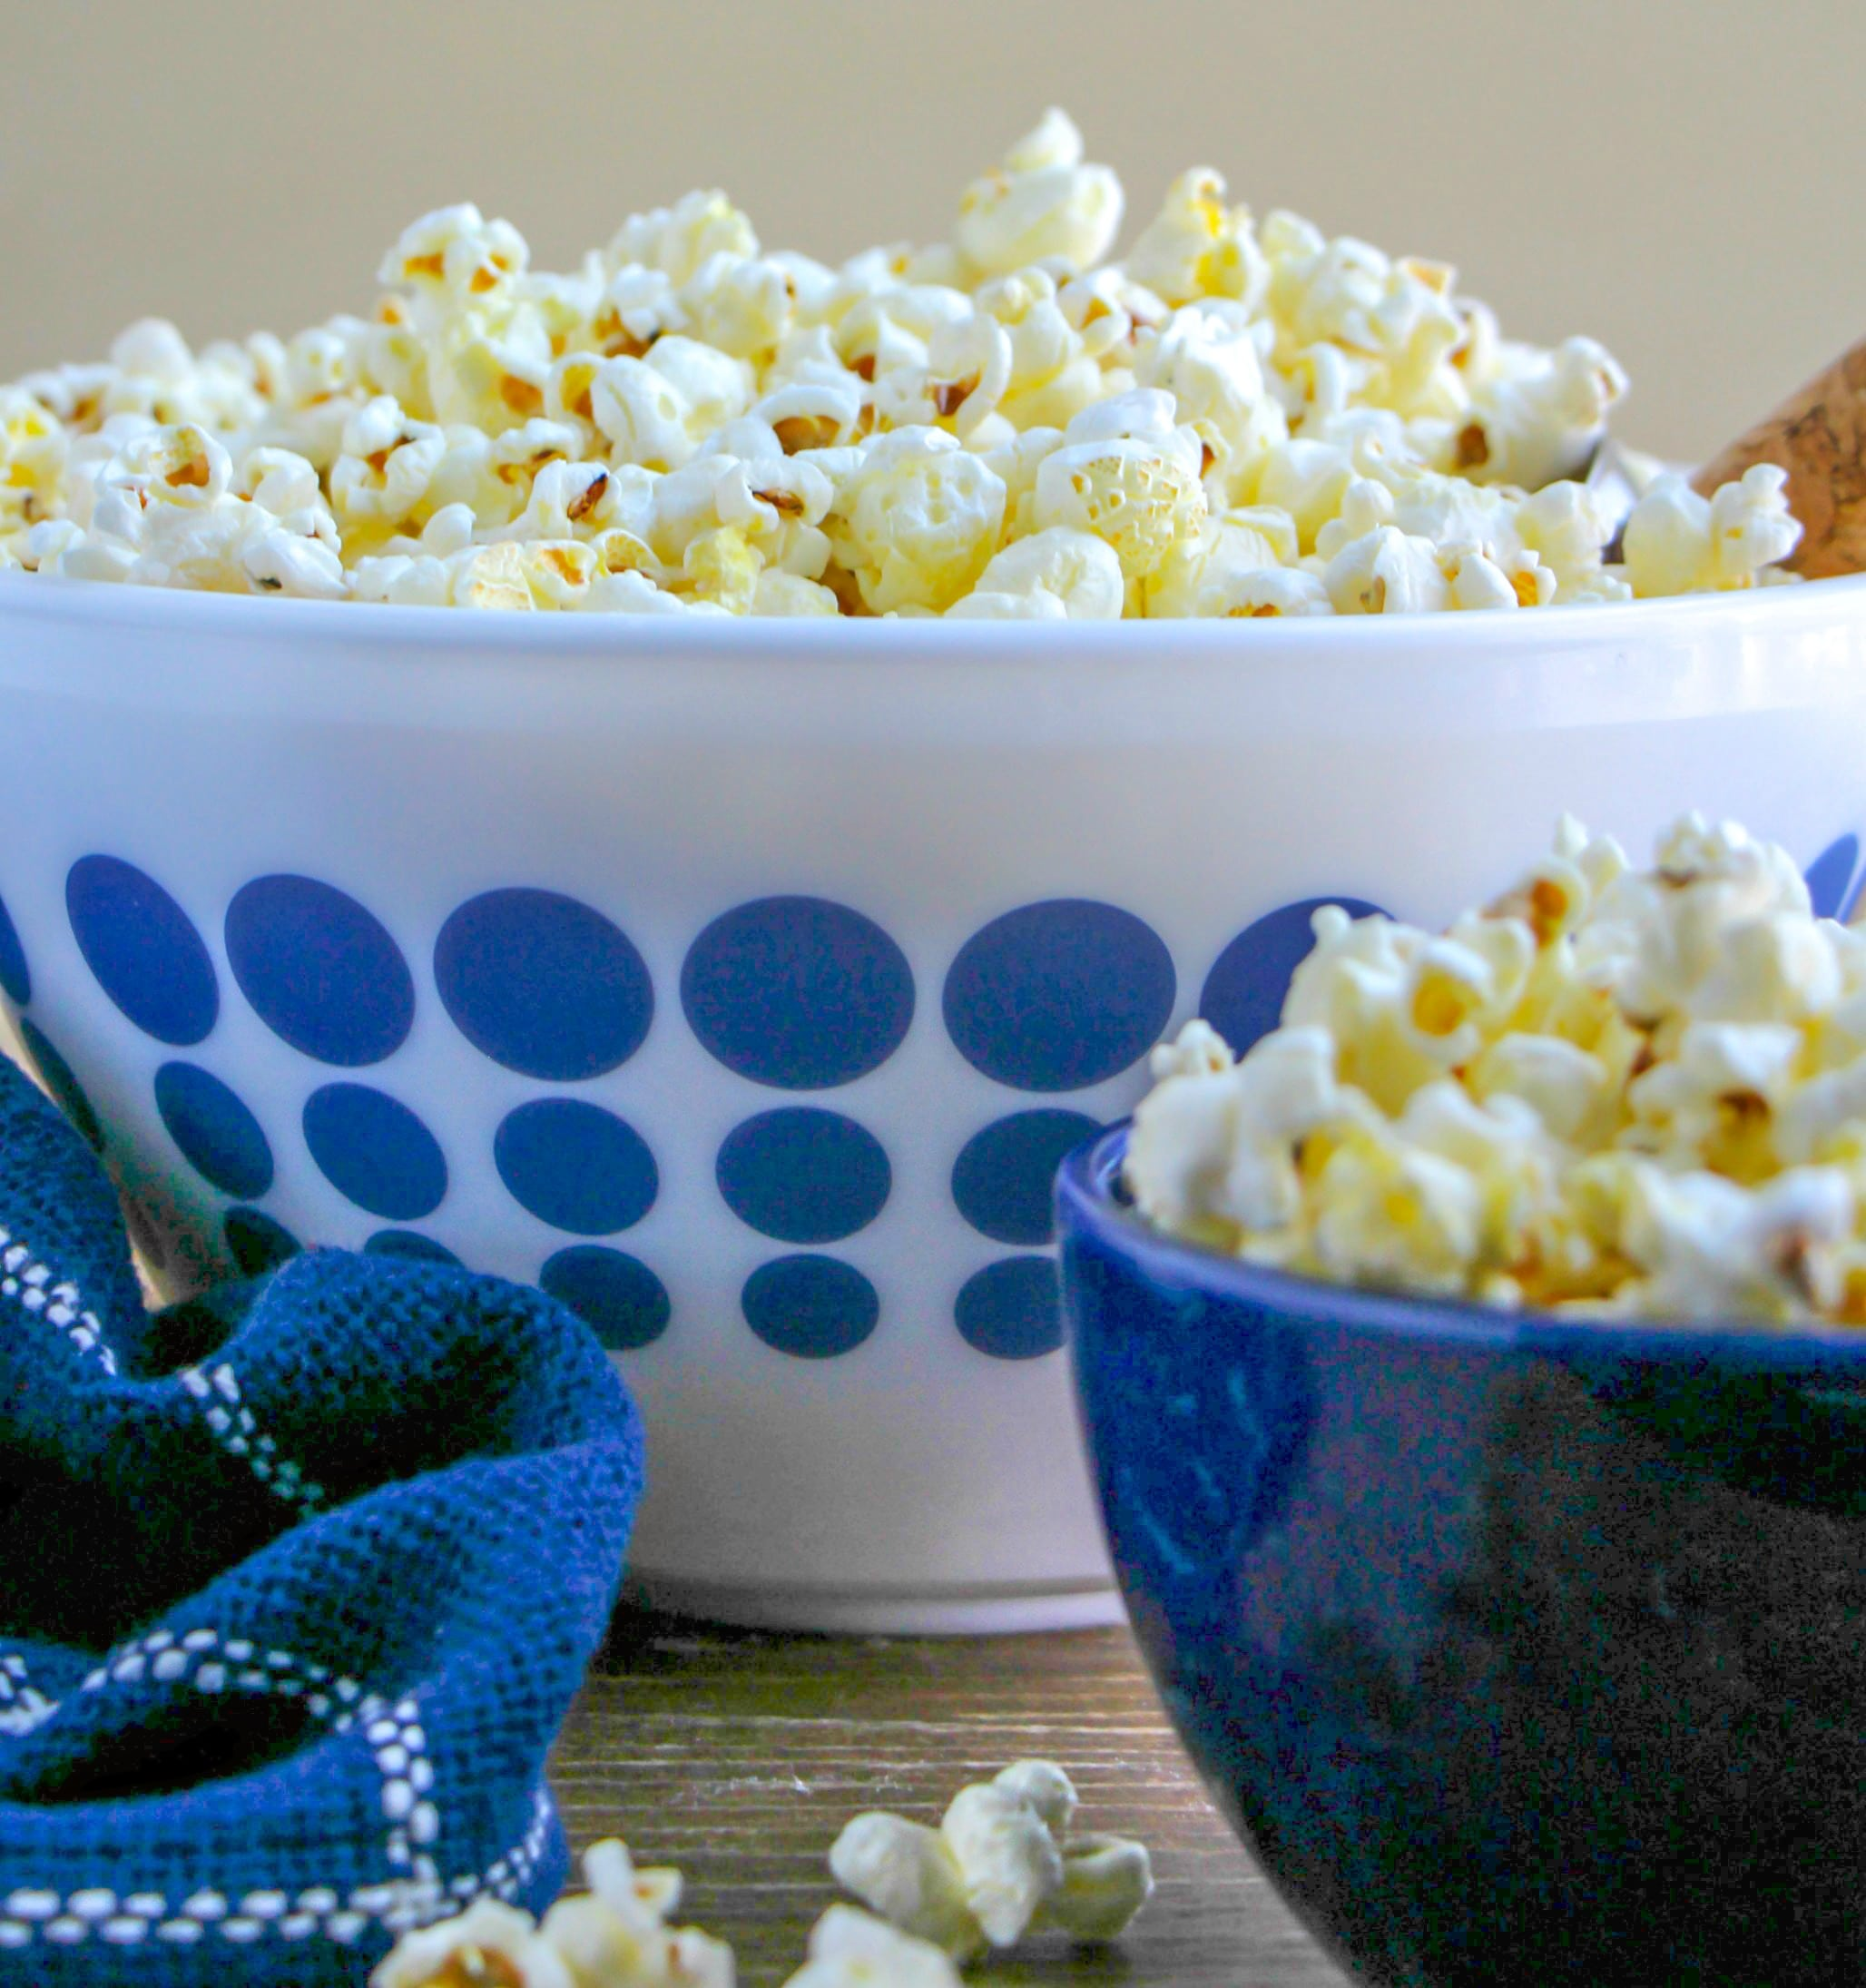 Close of photo a homemade popcorn in blue and white bowls.